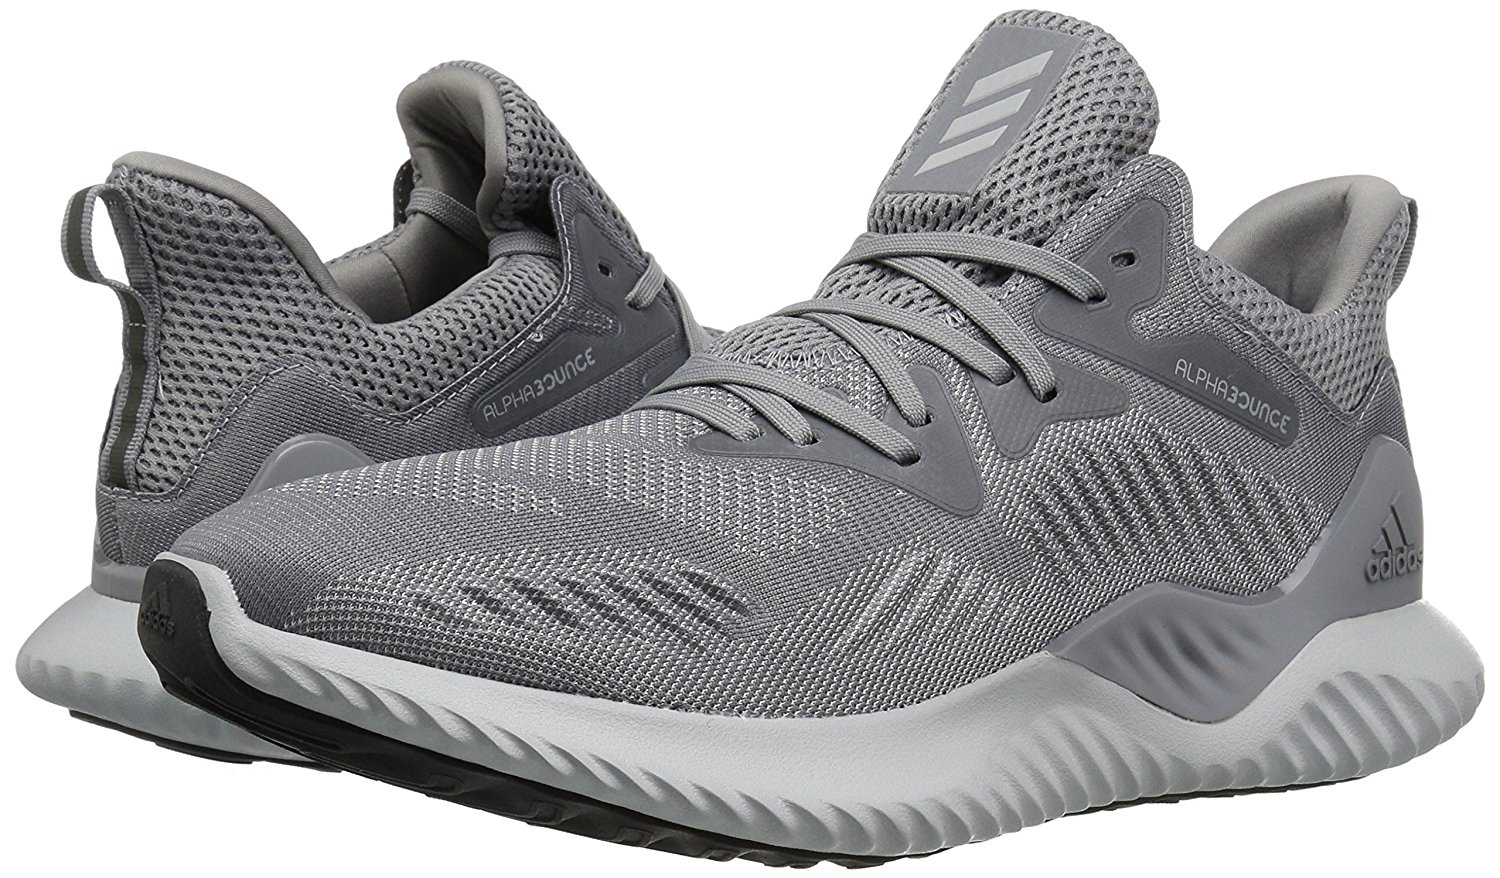 cd4ded430e098 Adidas Alphabounce Beyond Tested for Performance in 2019